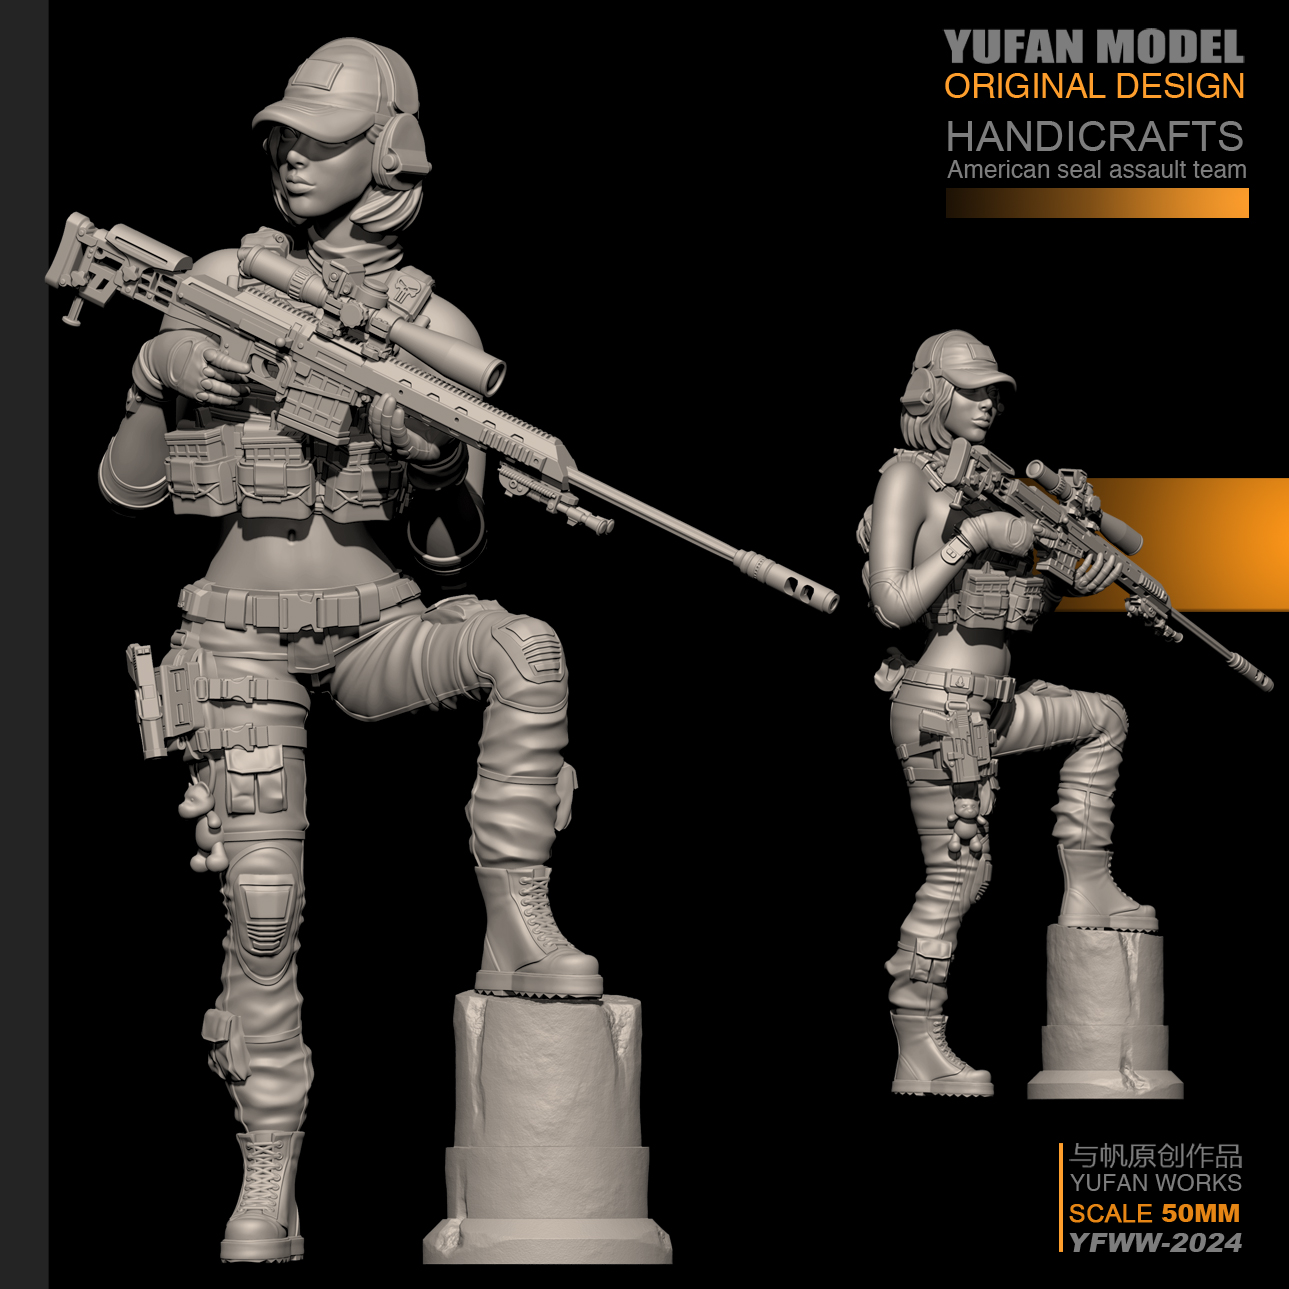 YUFan Model 1/35 Resin Kits Female Sniper Resin Soldier Self-assembled YFWW35-2024